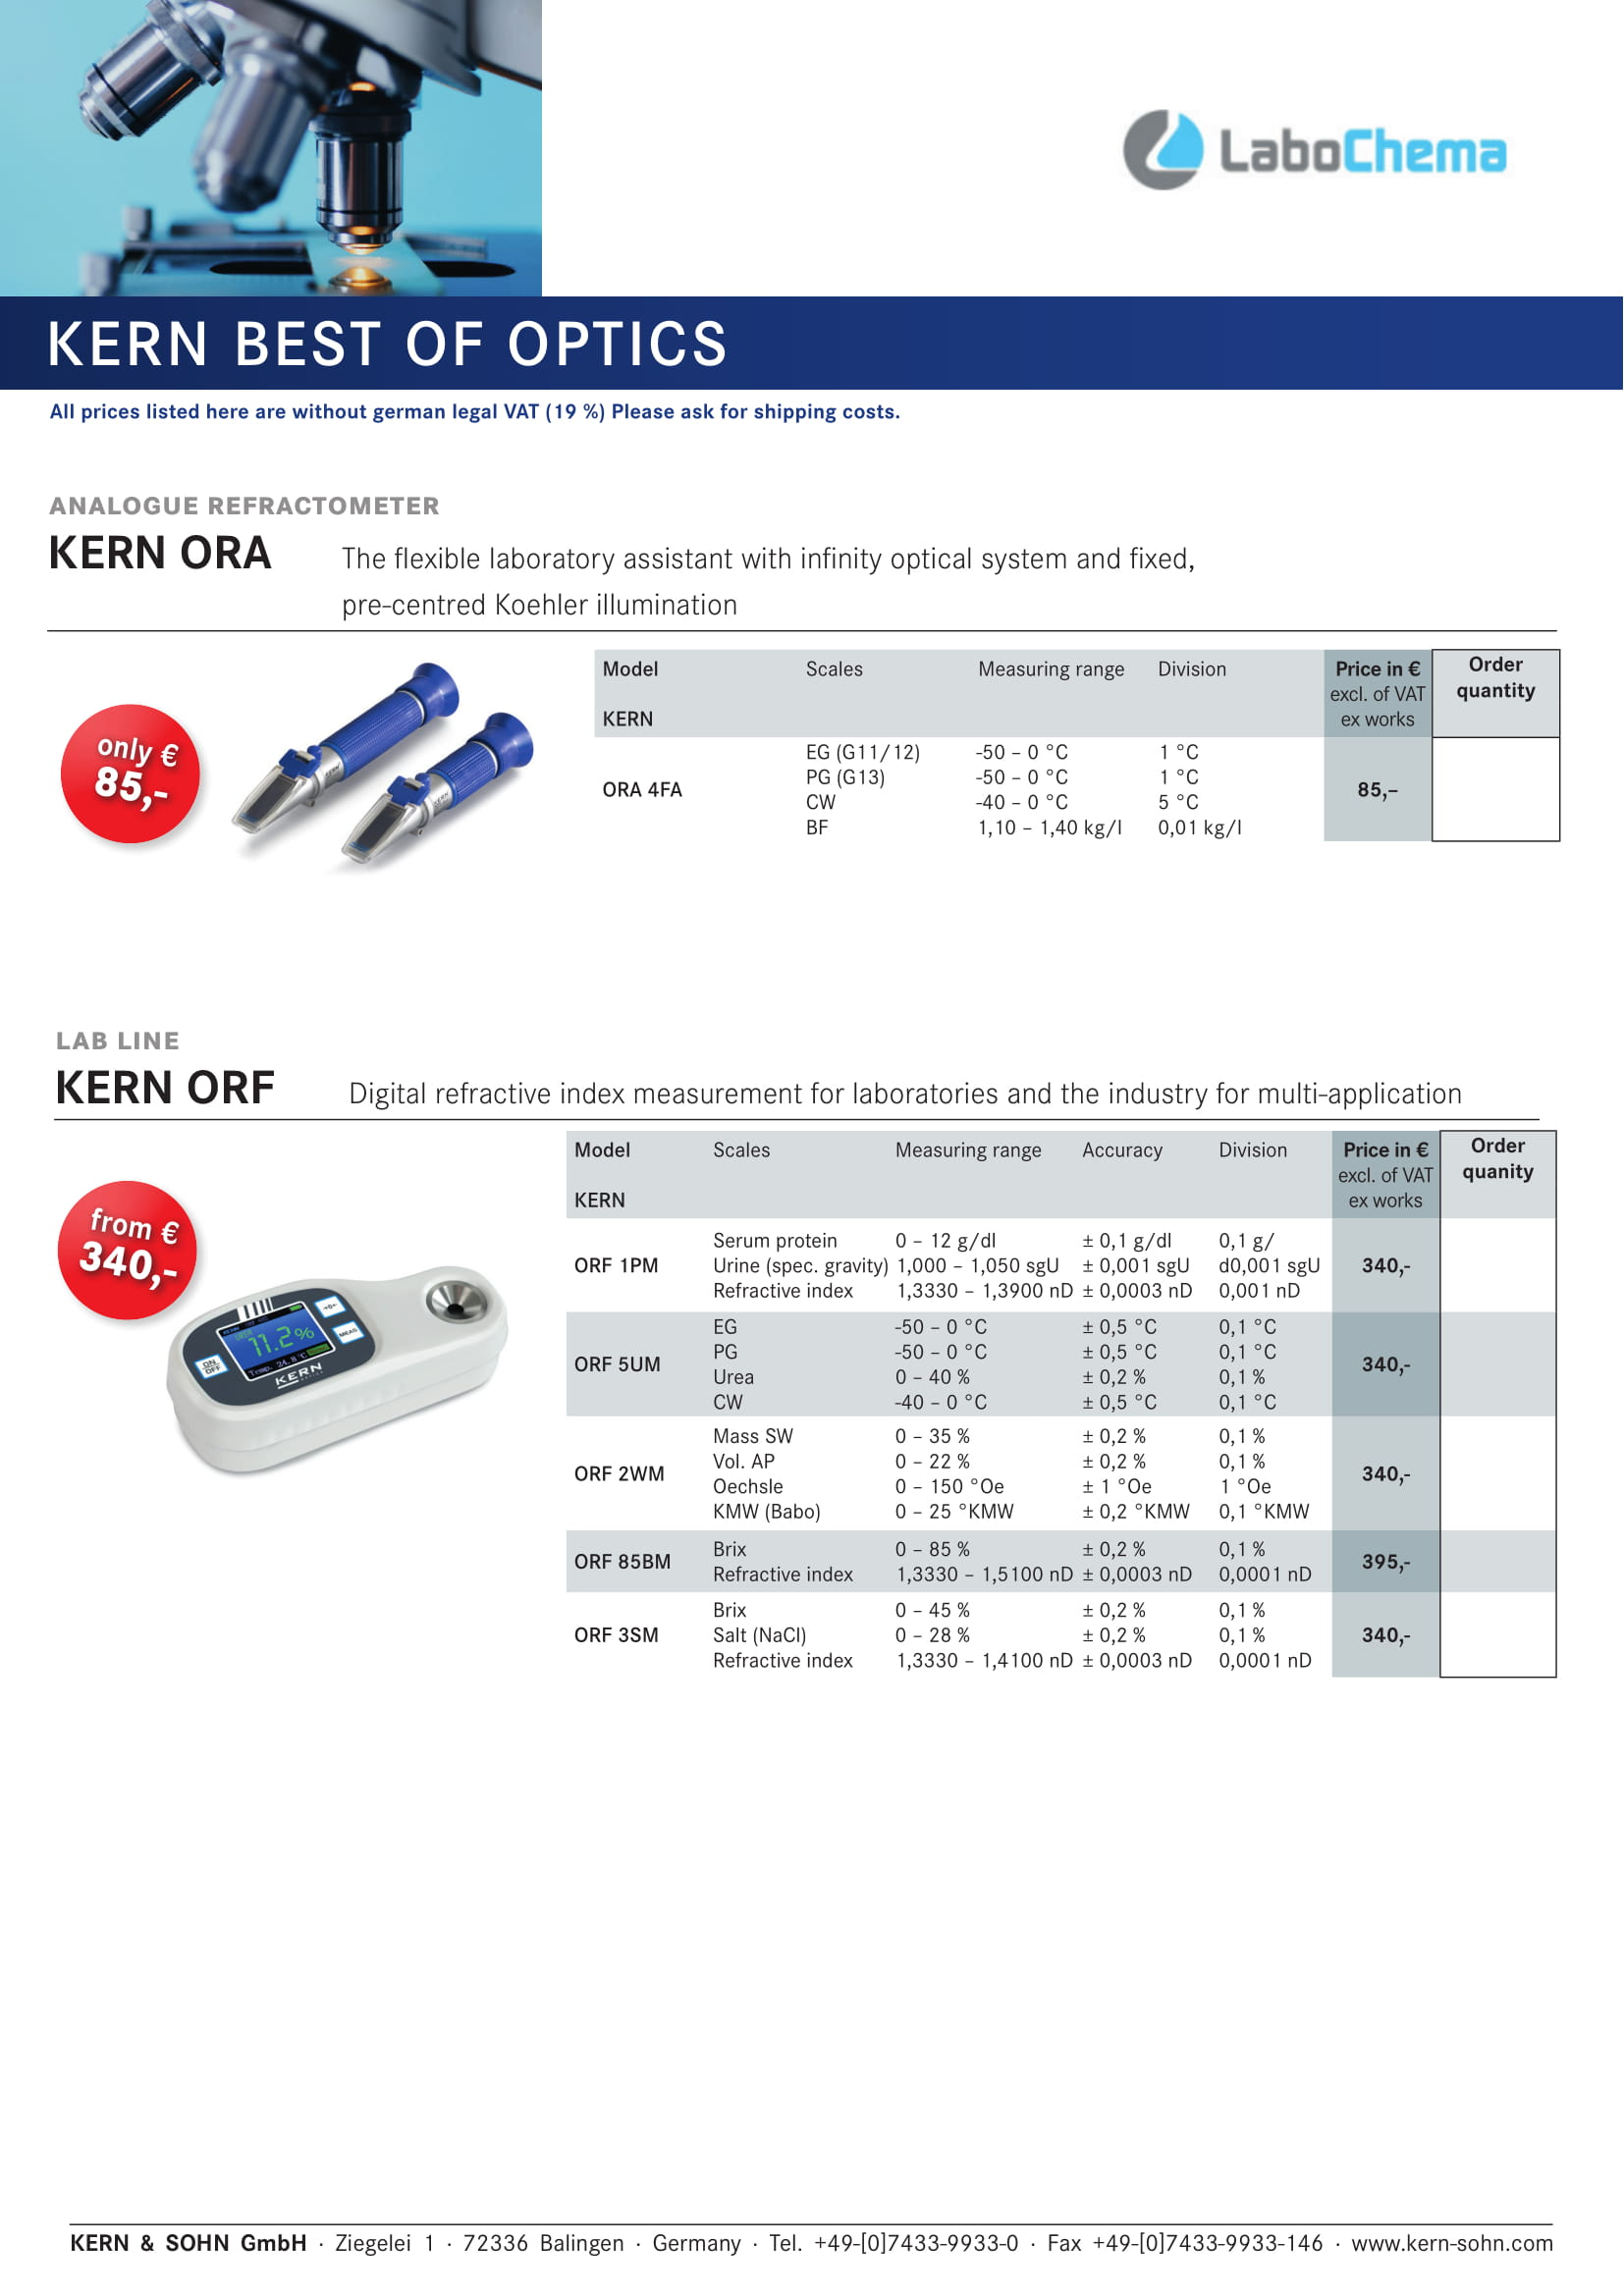 KERN_Flyer_Optic_Labochema_GB-3